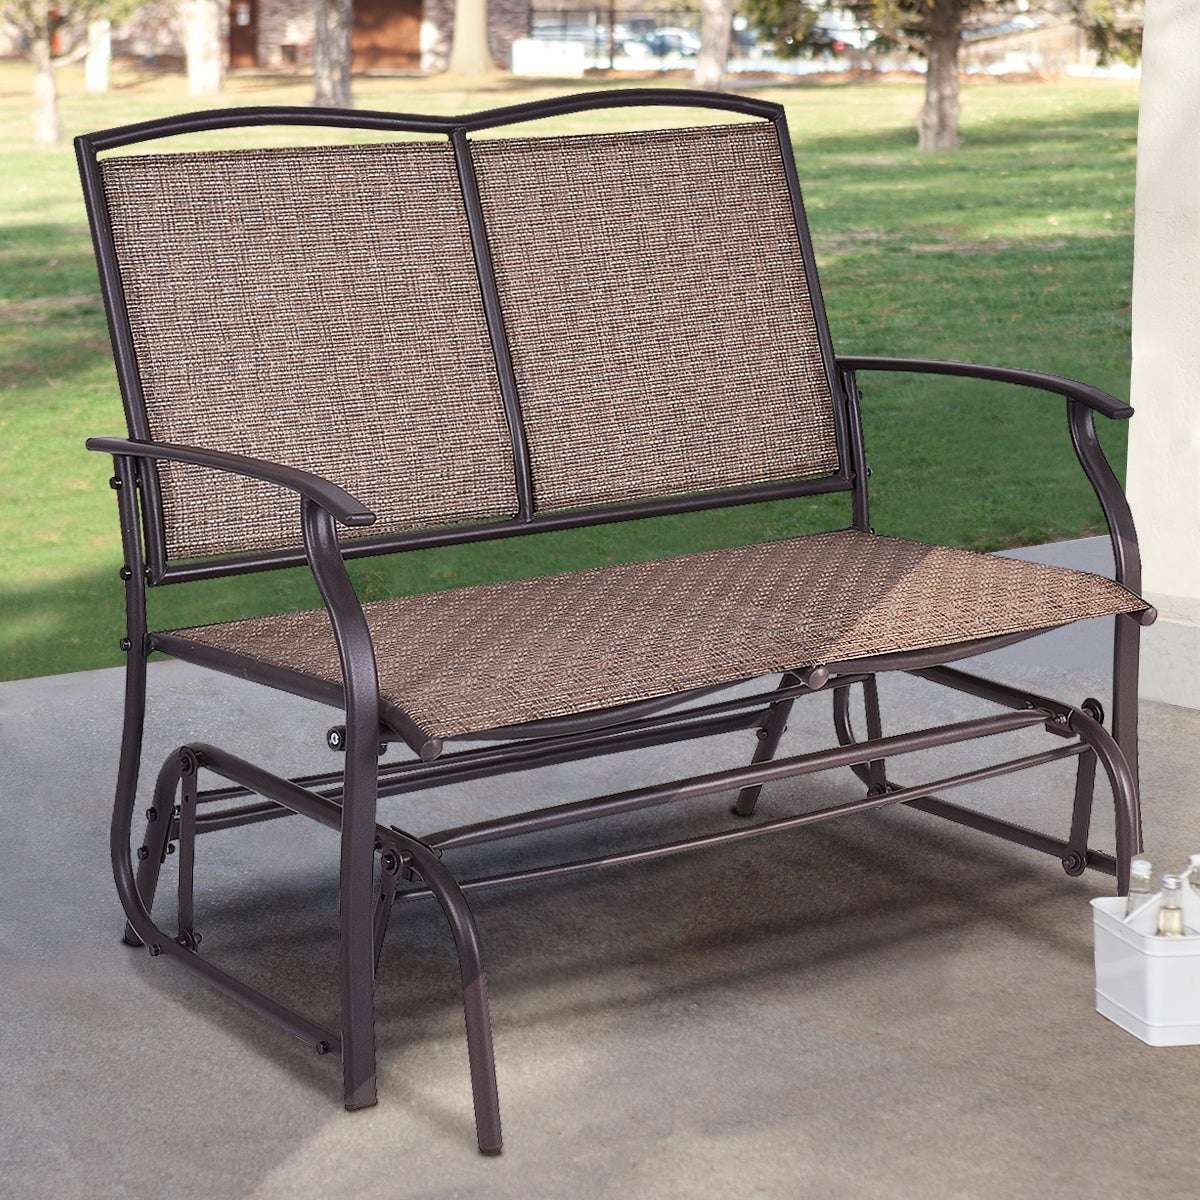 Costway Patio Glider Rocking Bench Double 2 Person Chair Loveseat Armchair Backyard With Rocking Love Seats Glider Swing Benches With Sturdy Frame (View 6 of 25)